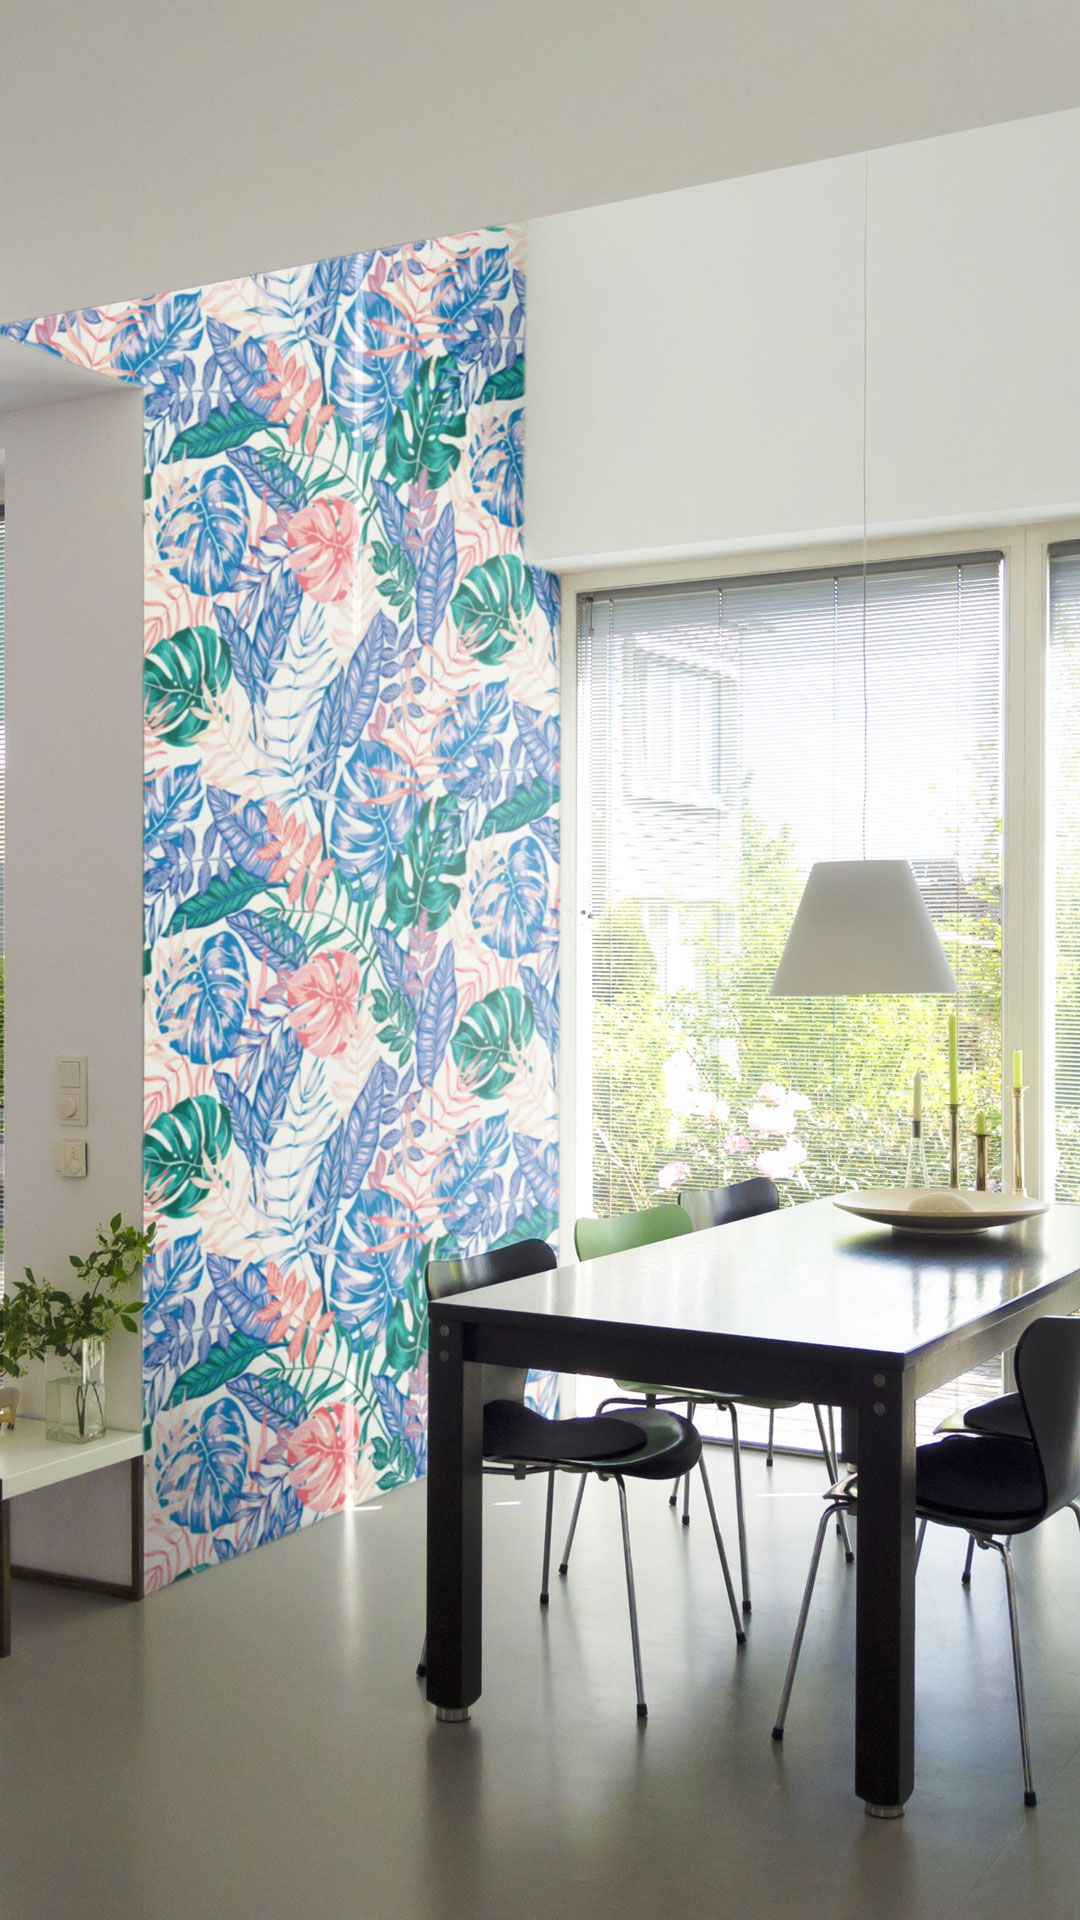 Blue and Pink Floral Floral Fabric Removable Wallpaper